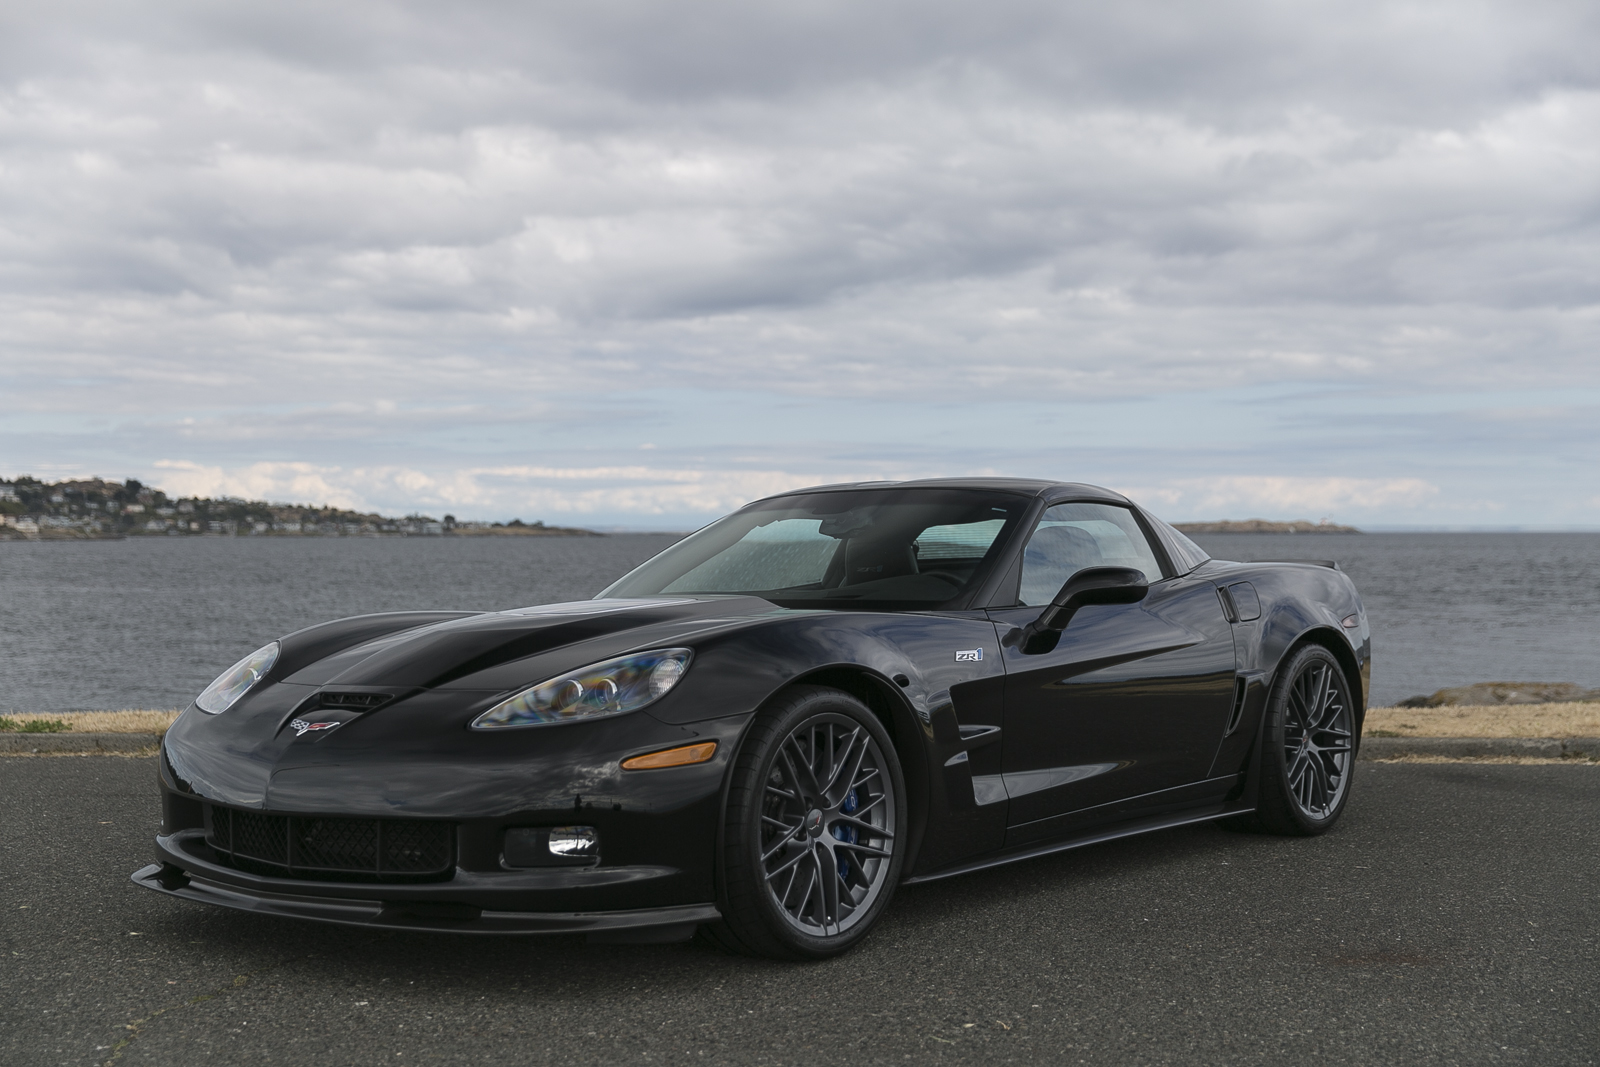 2011 Chevrolet Corvette ZR1 C6 for sale